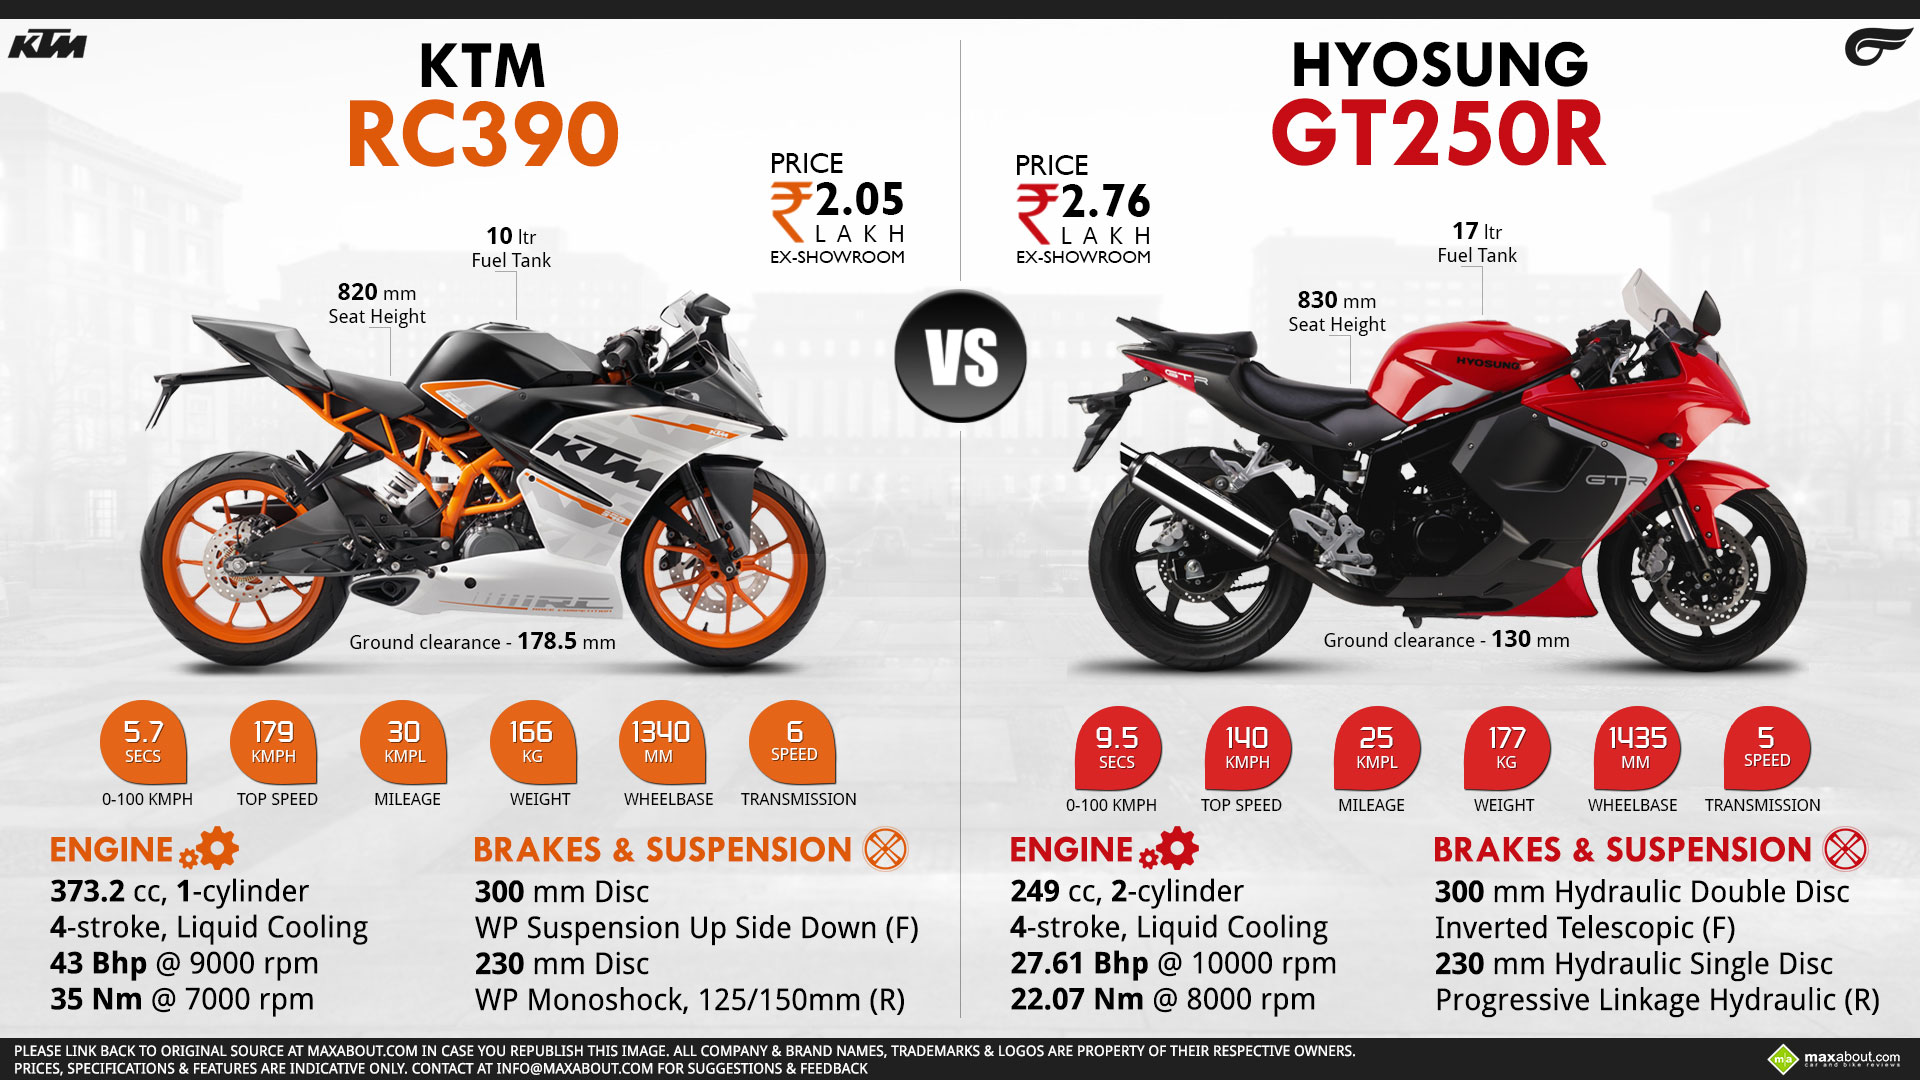 fast gas rc cars with Ktm Rc 390 Vs Hyosung Gt250r on Nitro Rc Drag CASFnOjzFtZdo93Erl1 uOc76lb5iAV77rVfzfXhGDo besides How To Insure Your Car Modifications further Nissan Builds 88 Lbs Three Cylinder Makes 400 Hp Le Mans further Electric Cars Explainer in addition Fake alleged smart car body ki.